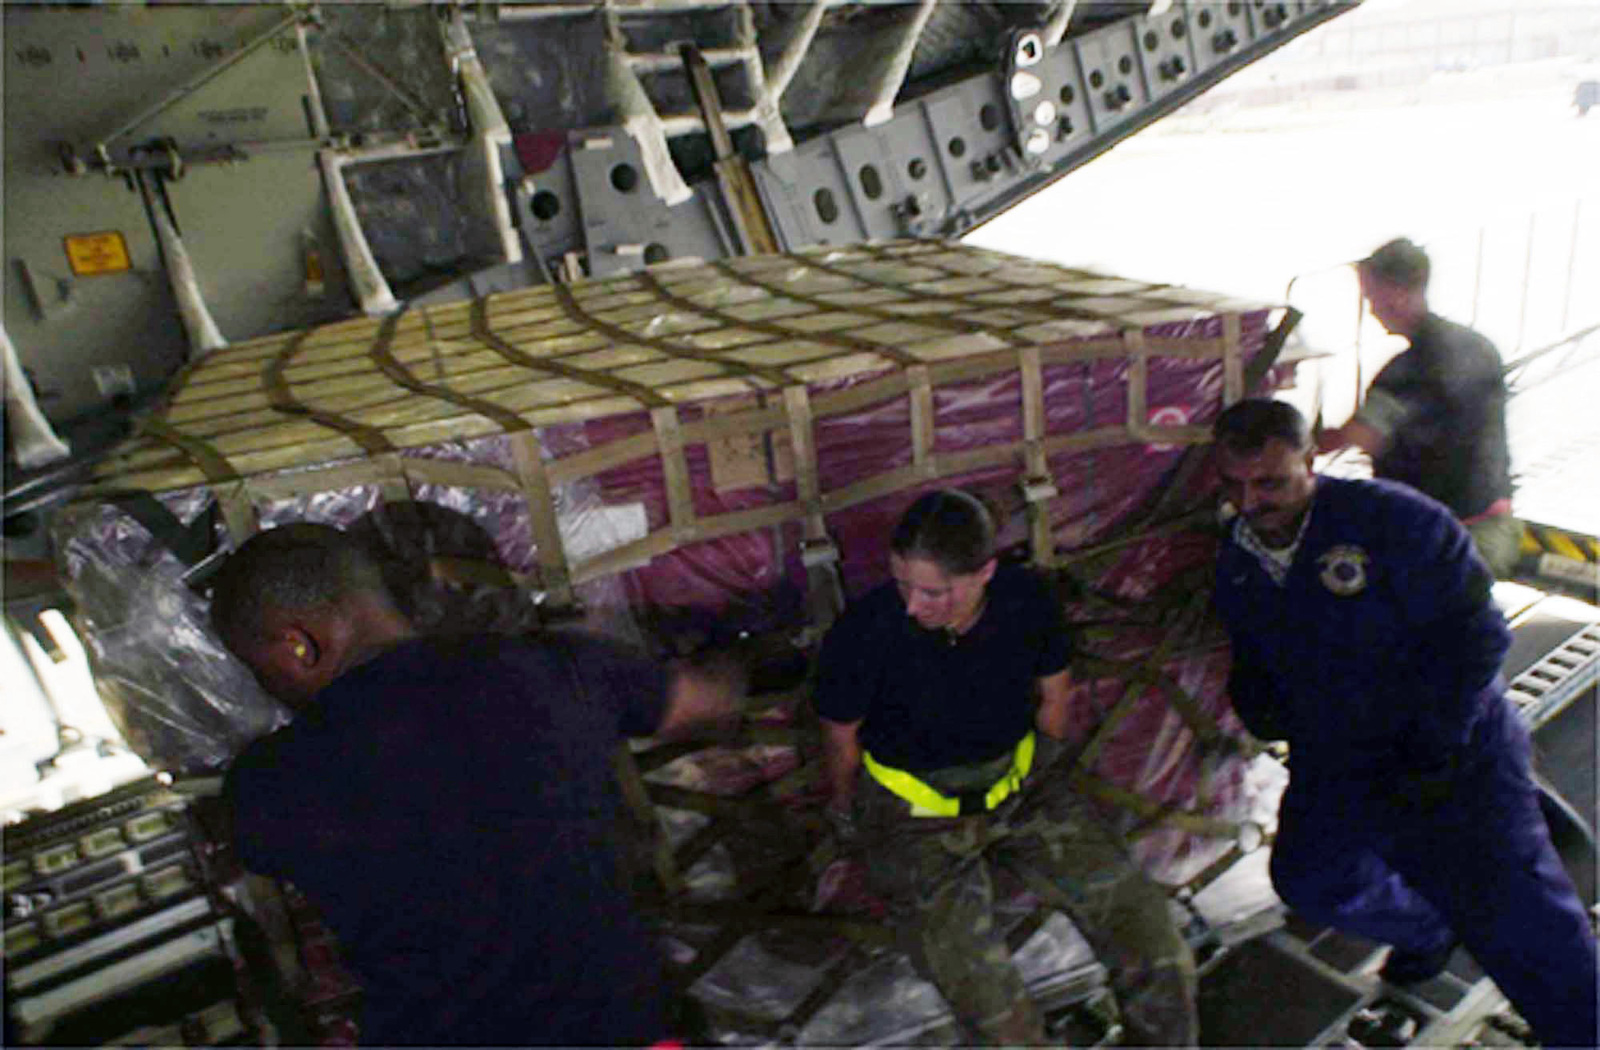 US Air Force (USAF) Airmen assigned to the 728th Air Mobility Squadron (AMS) and host country nationals load palletized cargo onto a C-17A Globemaster III aircraft, while deployed at a forward location in support of Operation ENDURING FREEDOM. (Substandard image)